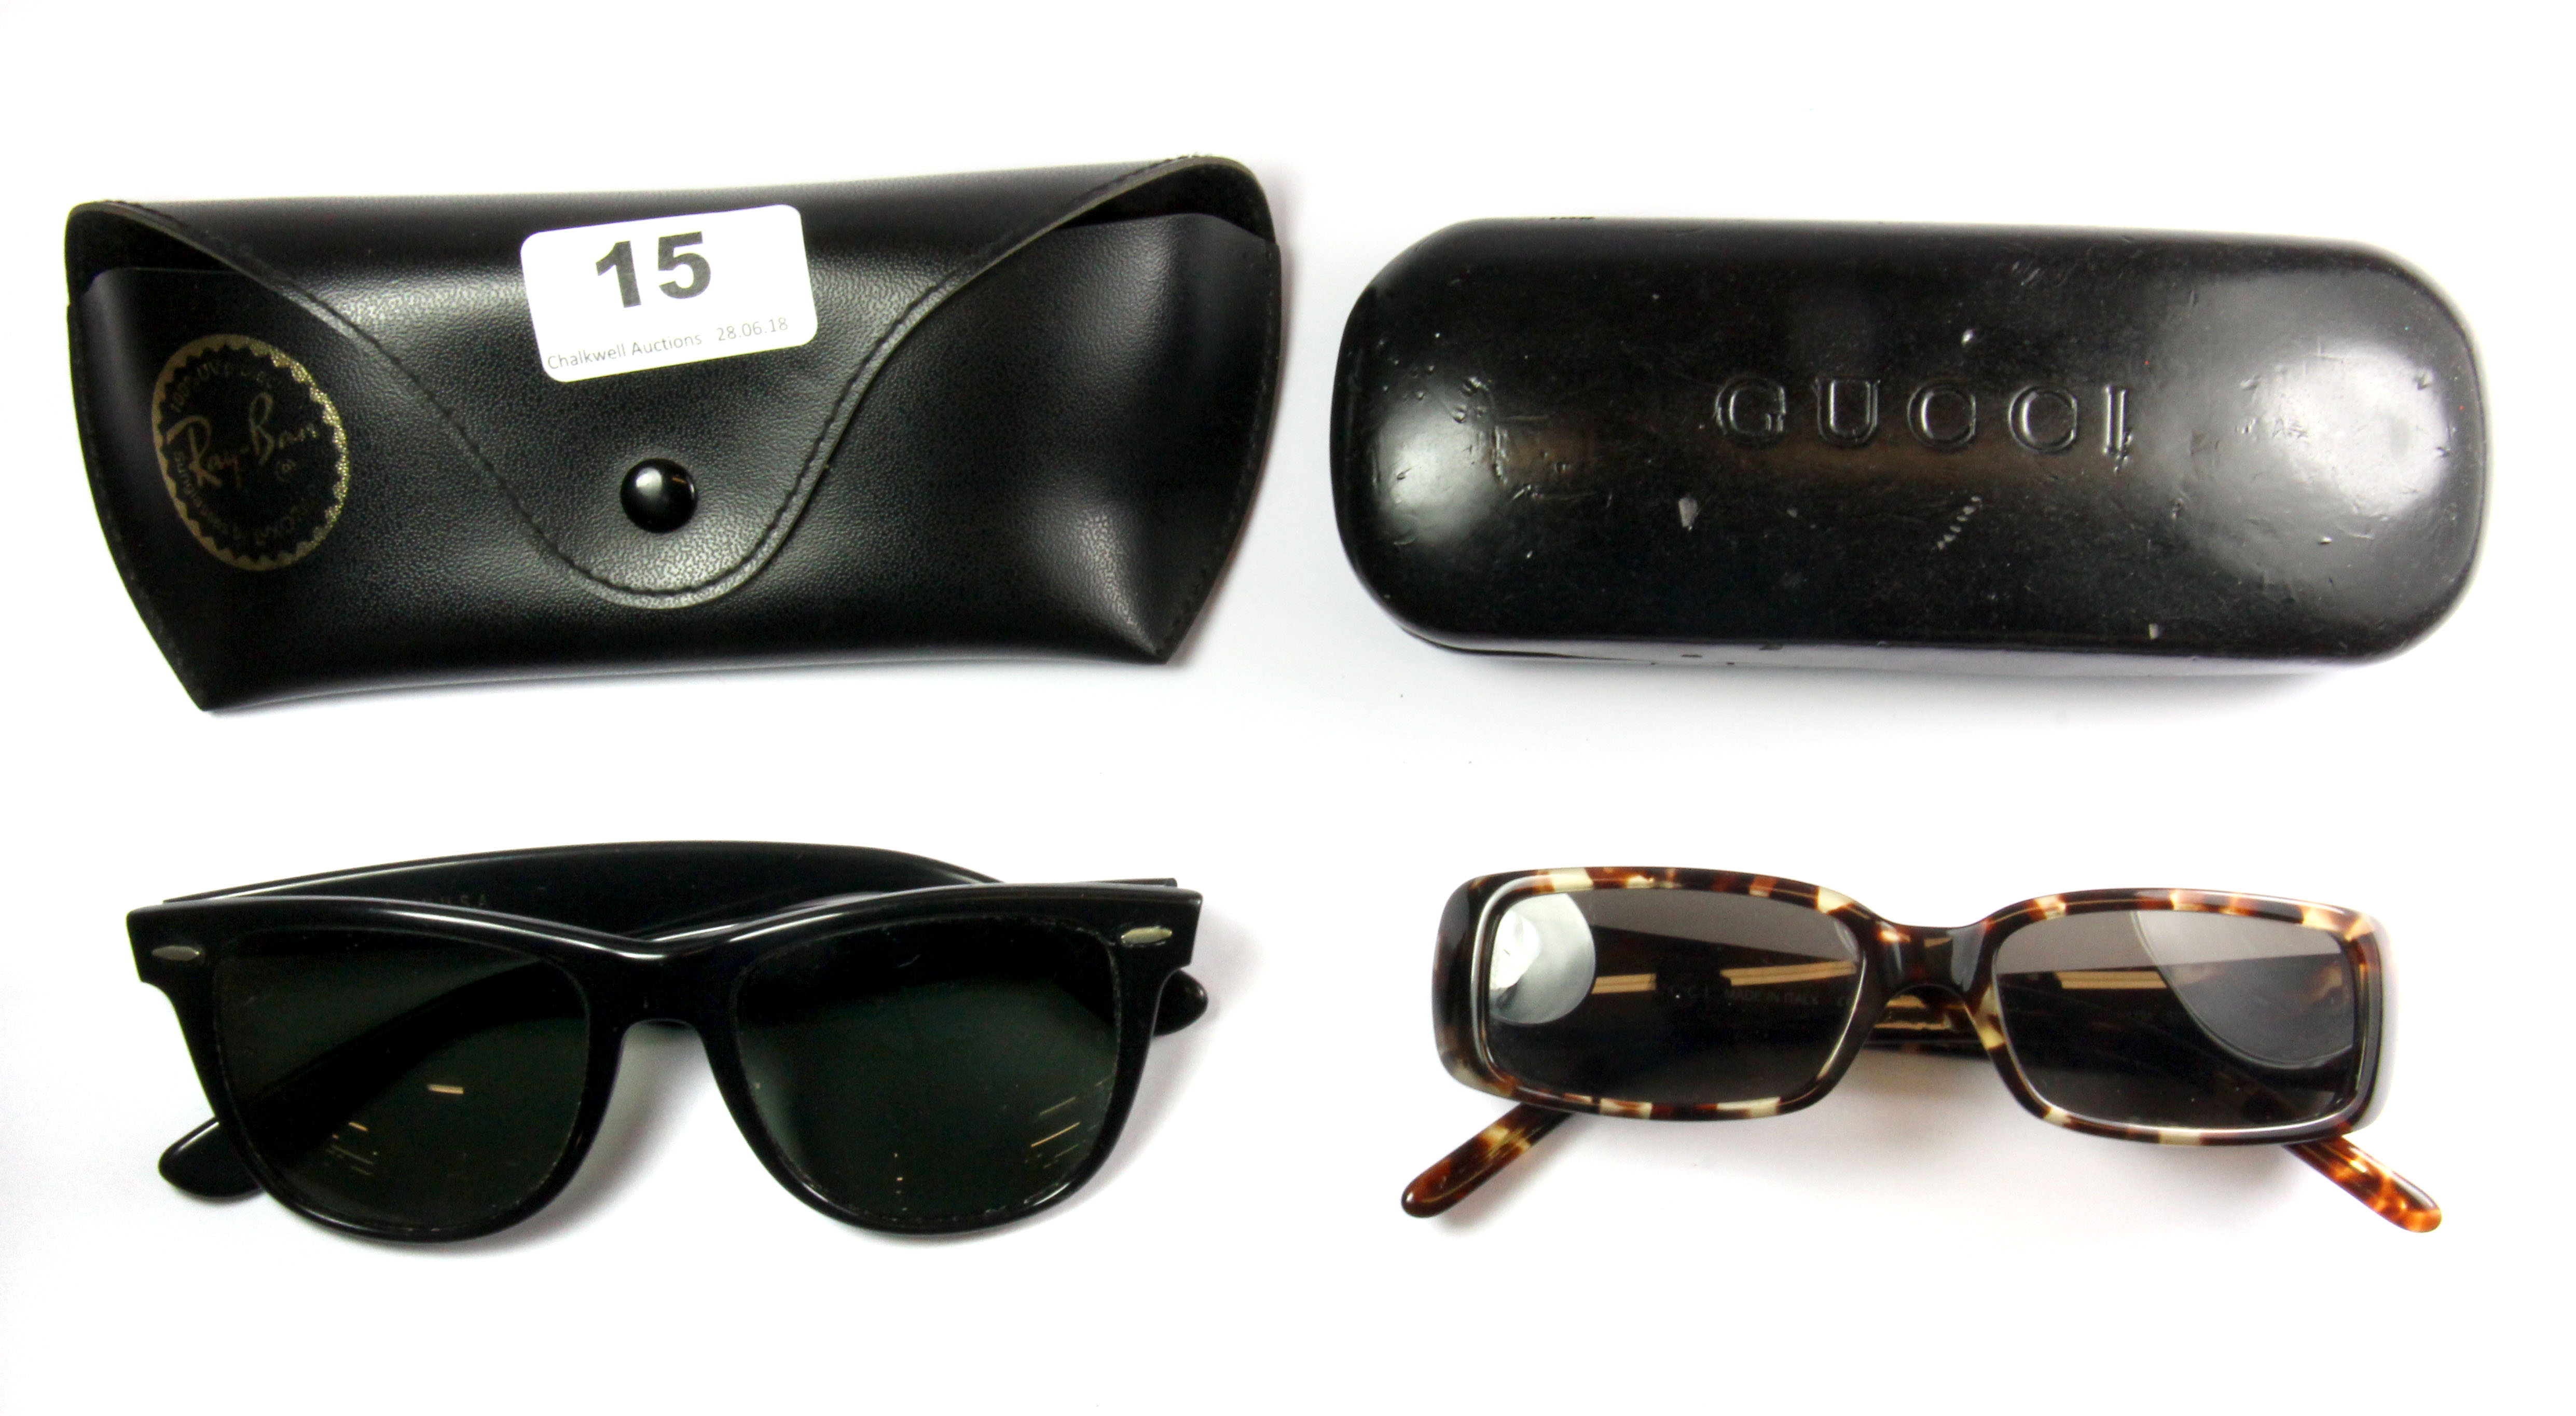 330112fc4ffab Lot 15 - A pair of vintage Ray Ban sunglasses and a pair of vintage Gucci  ...